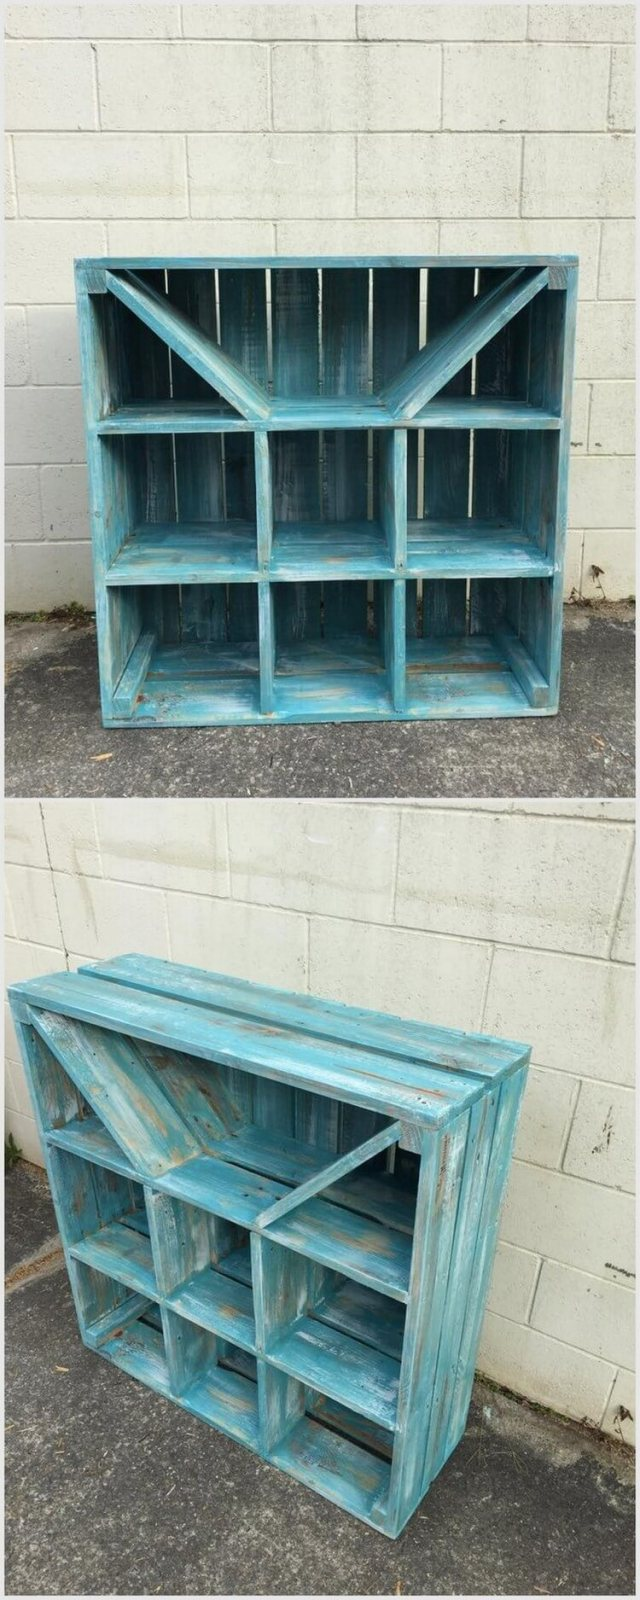 Recycled Wood Pallet Idea